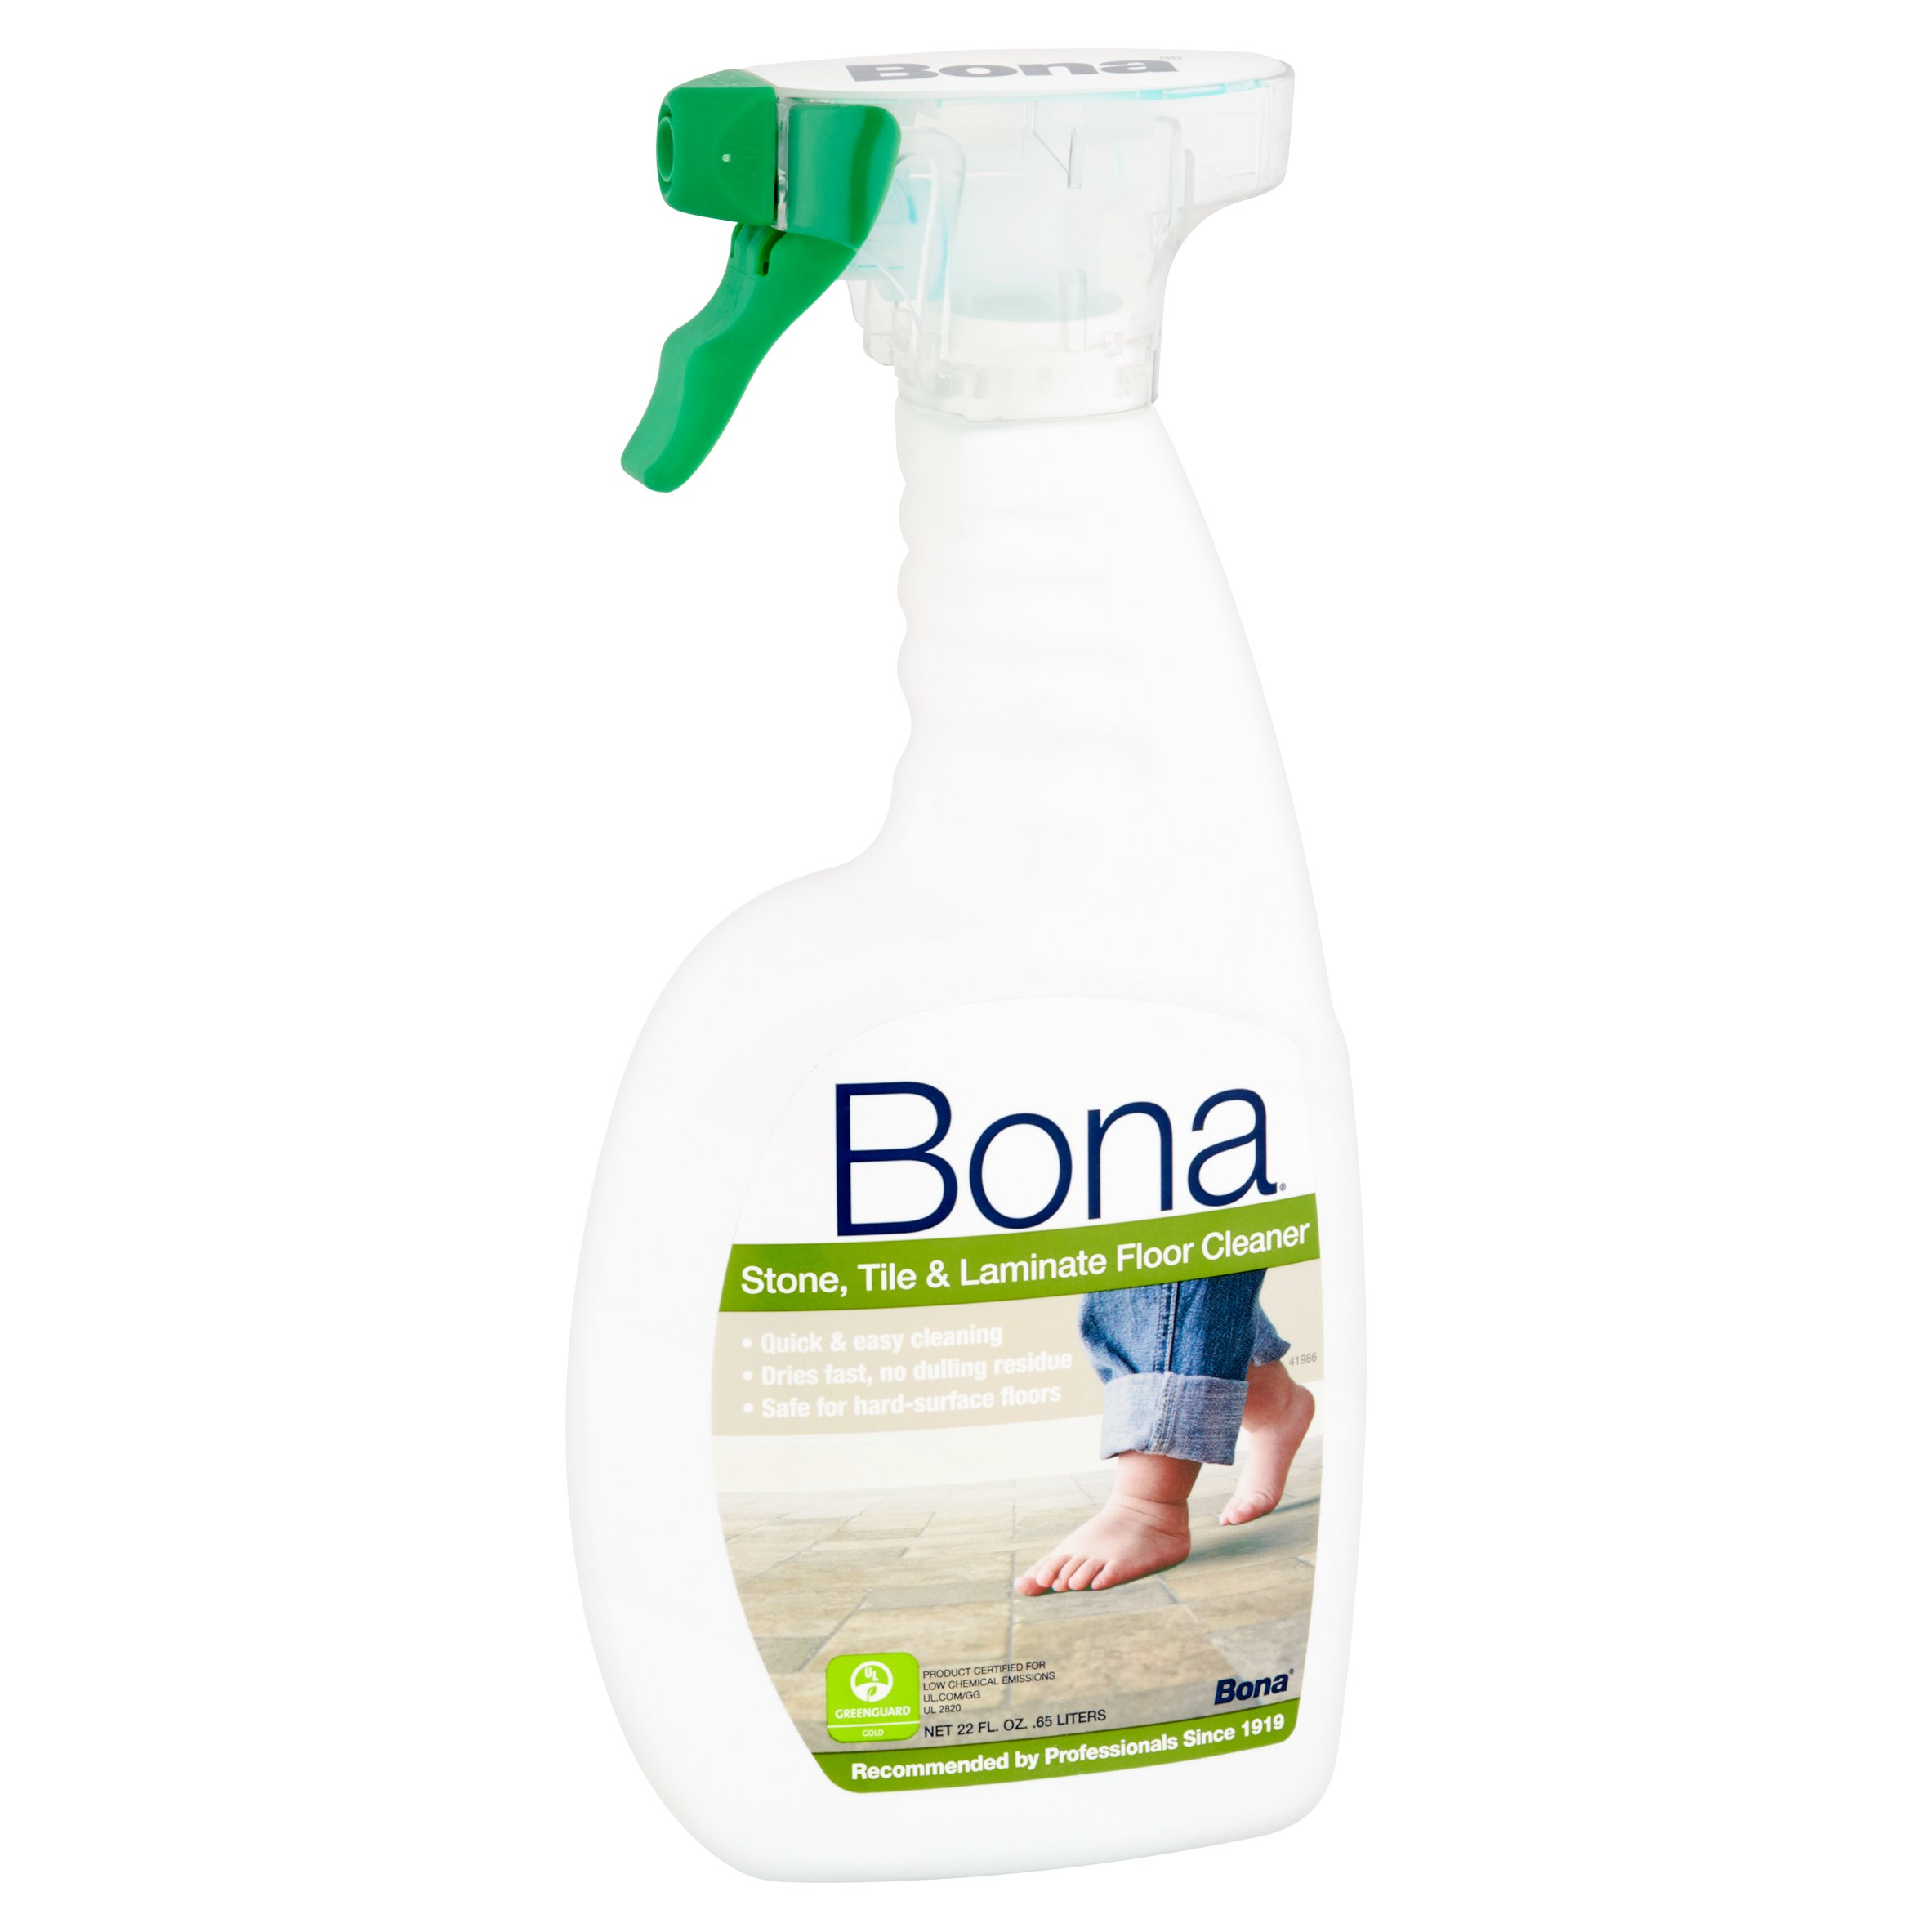 Bona stone tile laminate floor cleaner 22 fl oz walmart dailygadgetfo Images